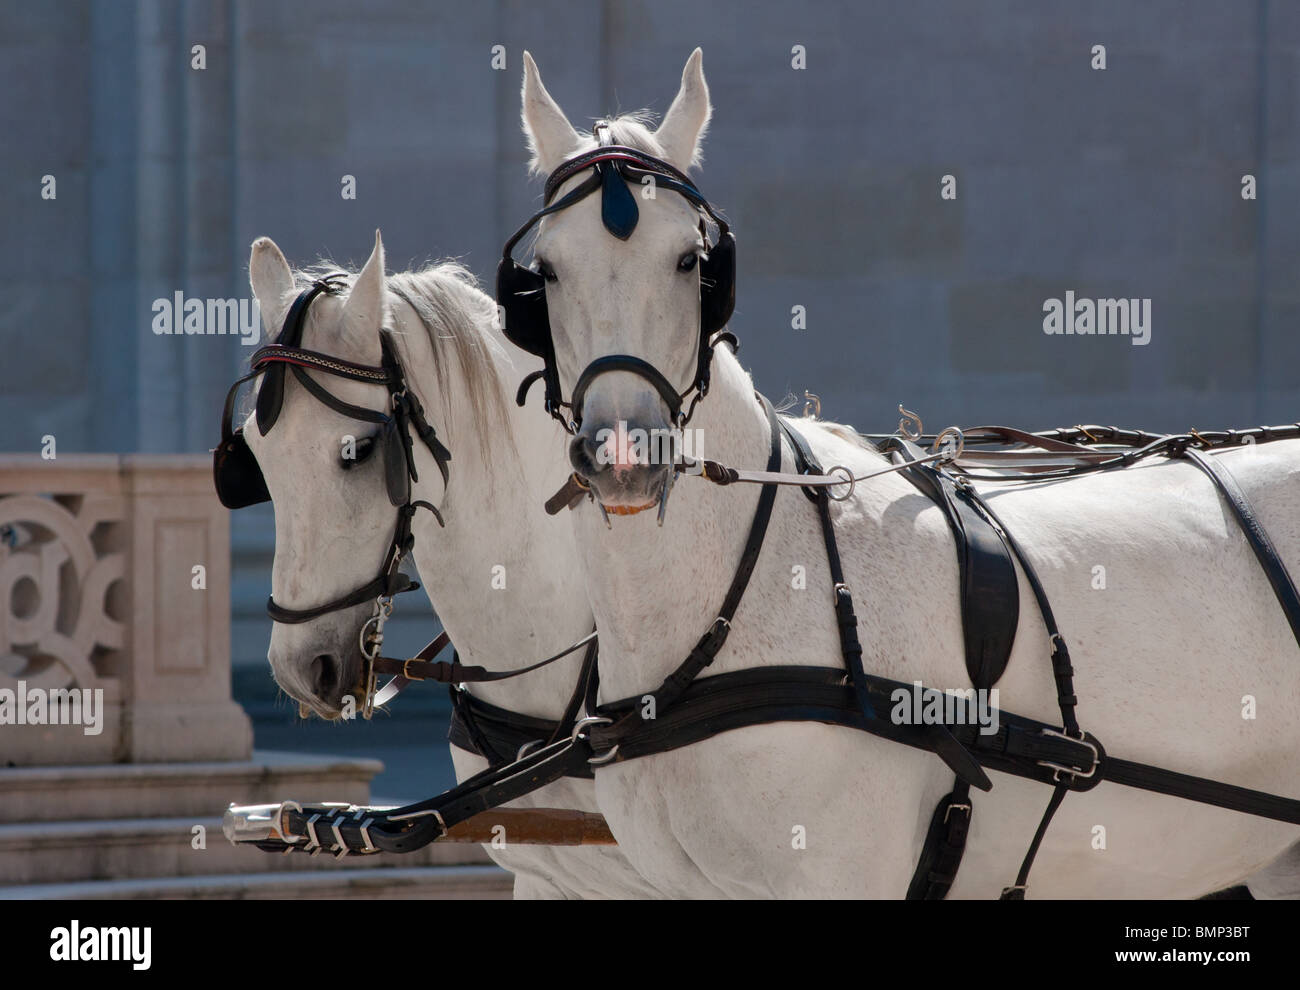 Traditional horse drawn carriages in Salzburg, Austria - Stock Image